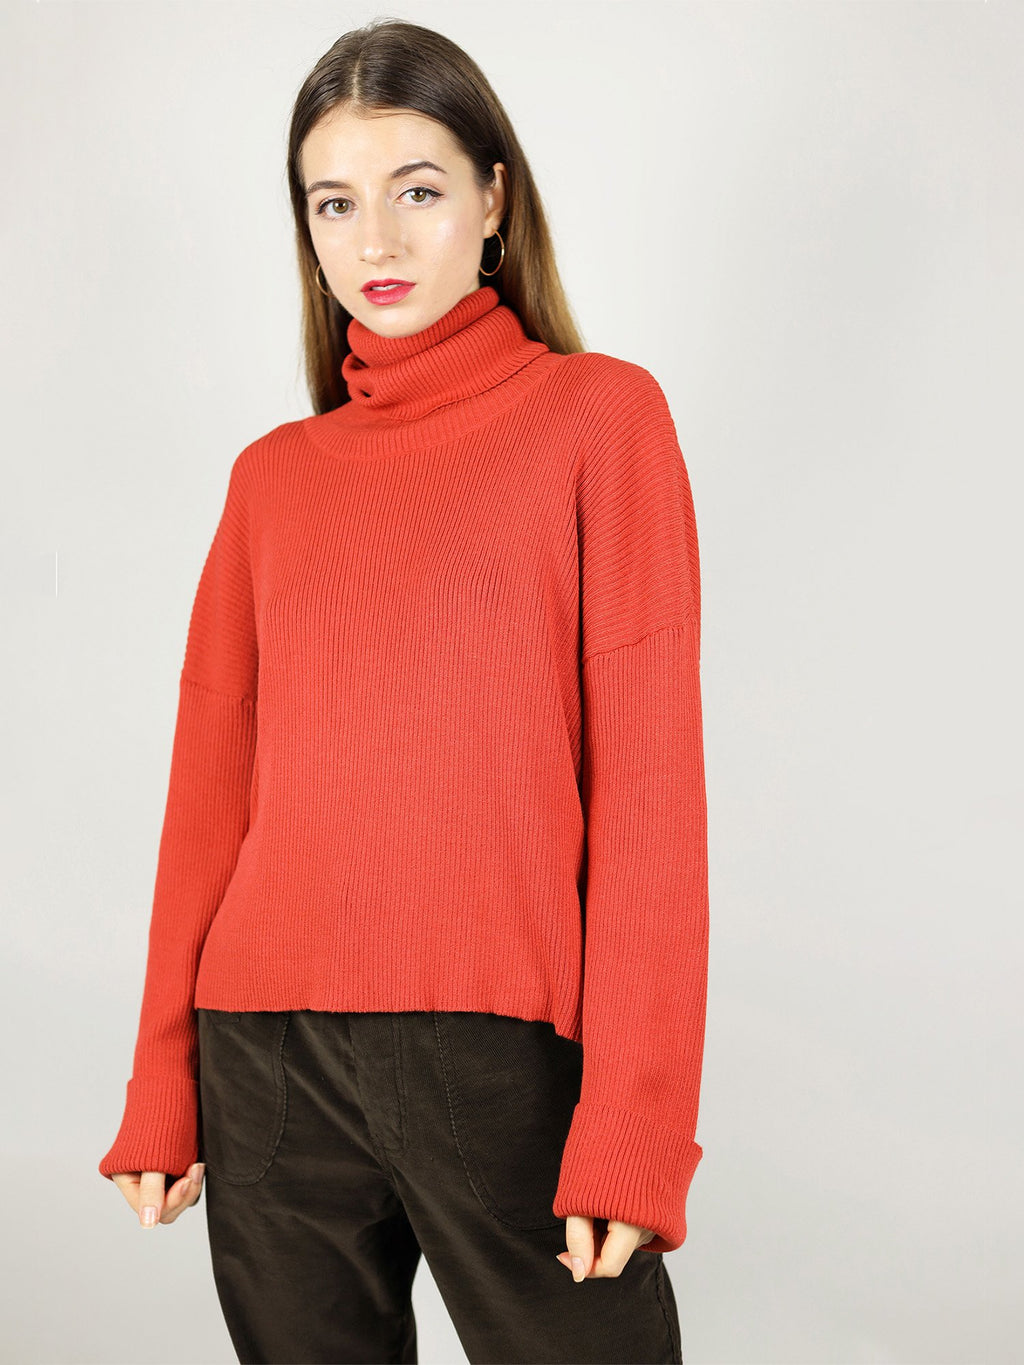 Made from 100% organic cotton, the red turteneck is very comfortable with loose fit. Some add ons include extra long roll neck pull over and long sleeves.